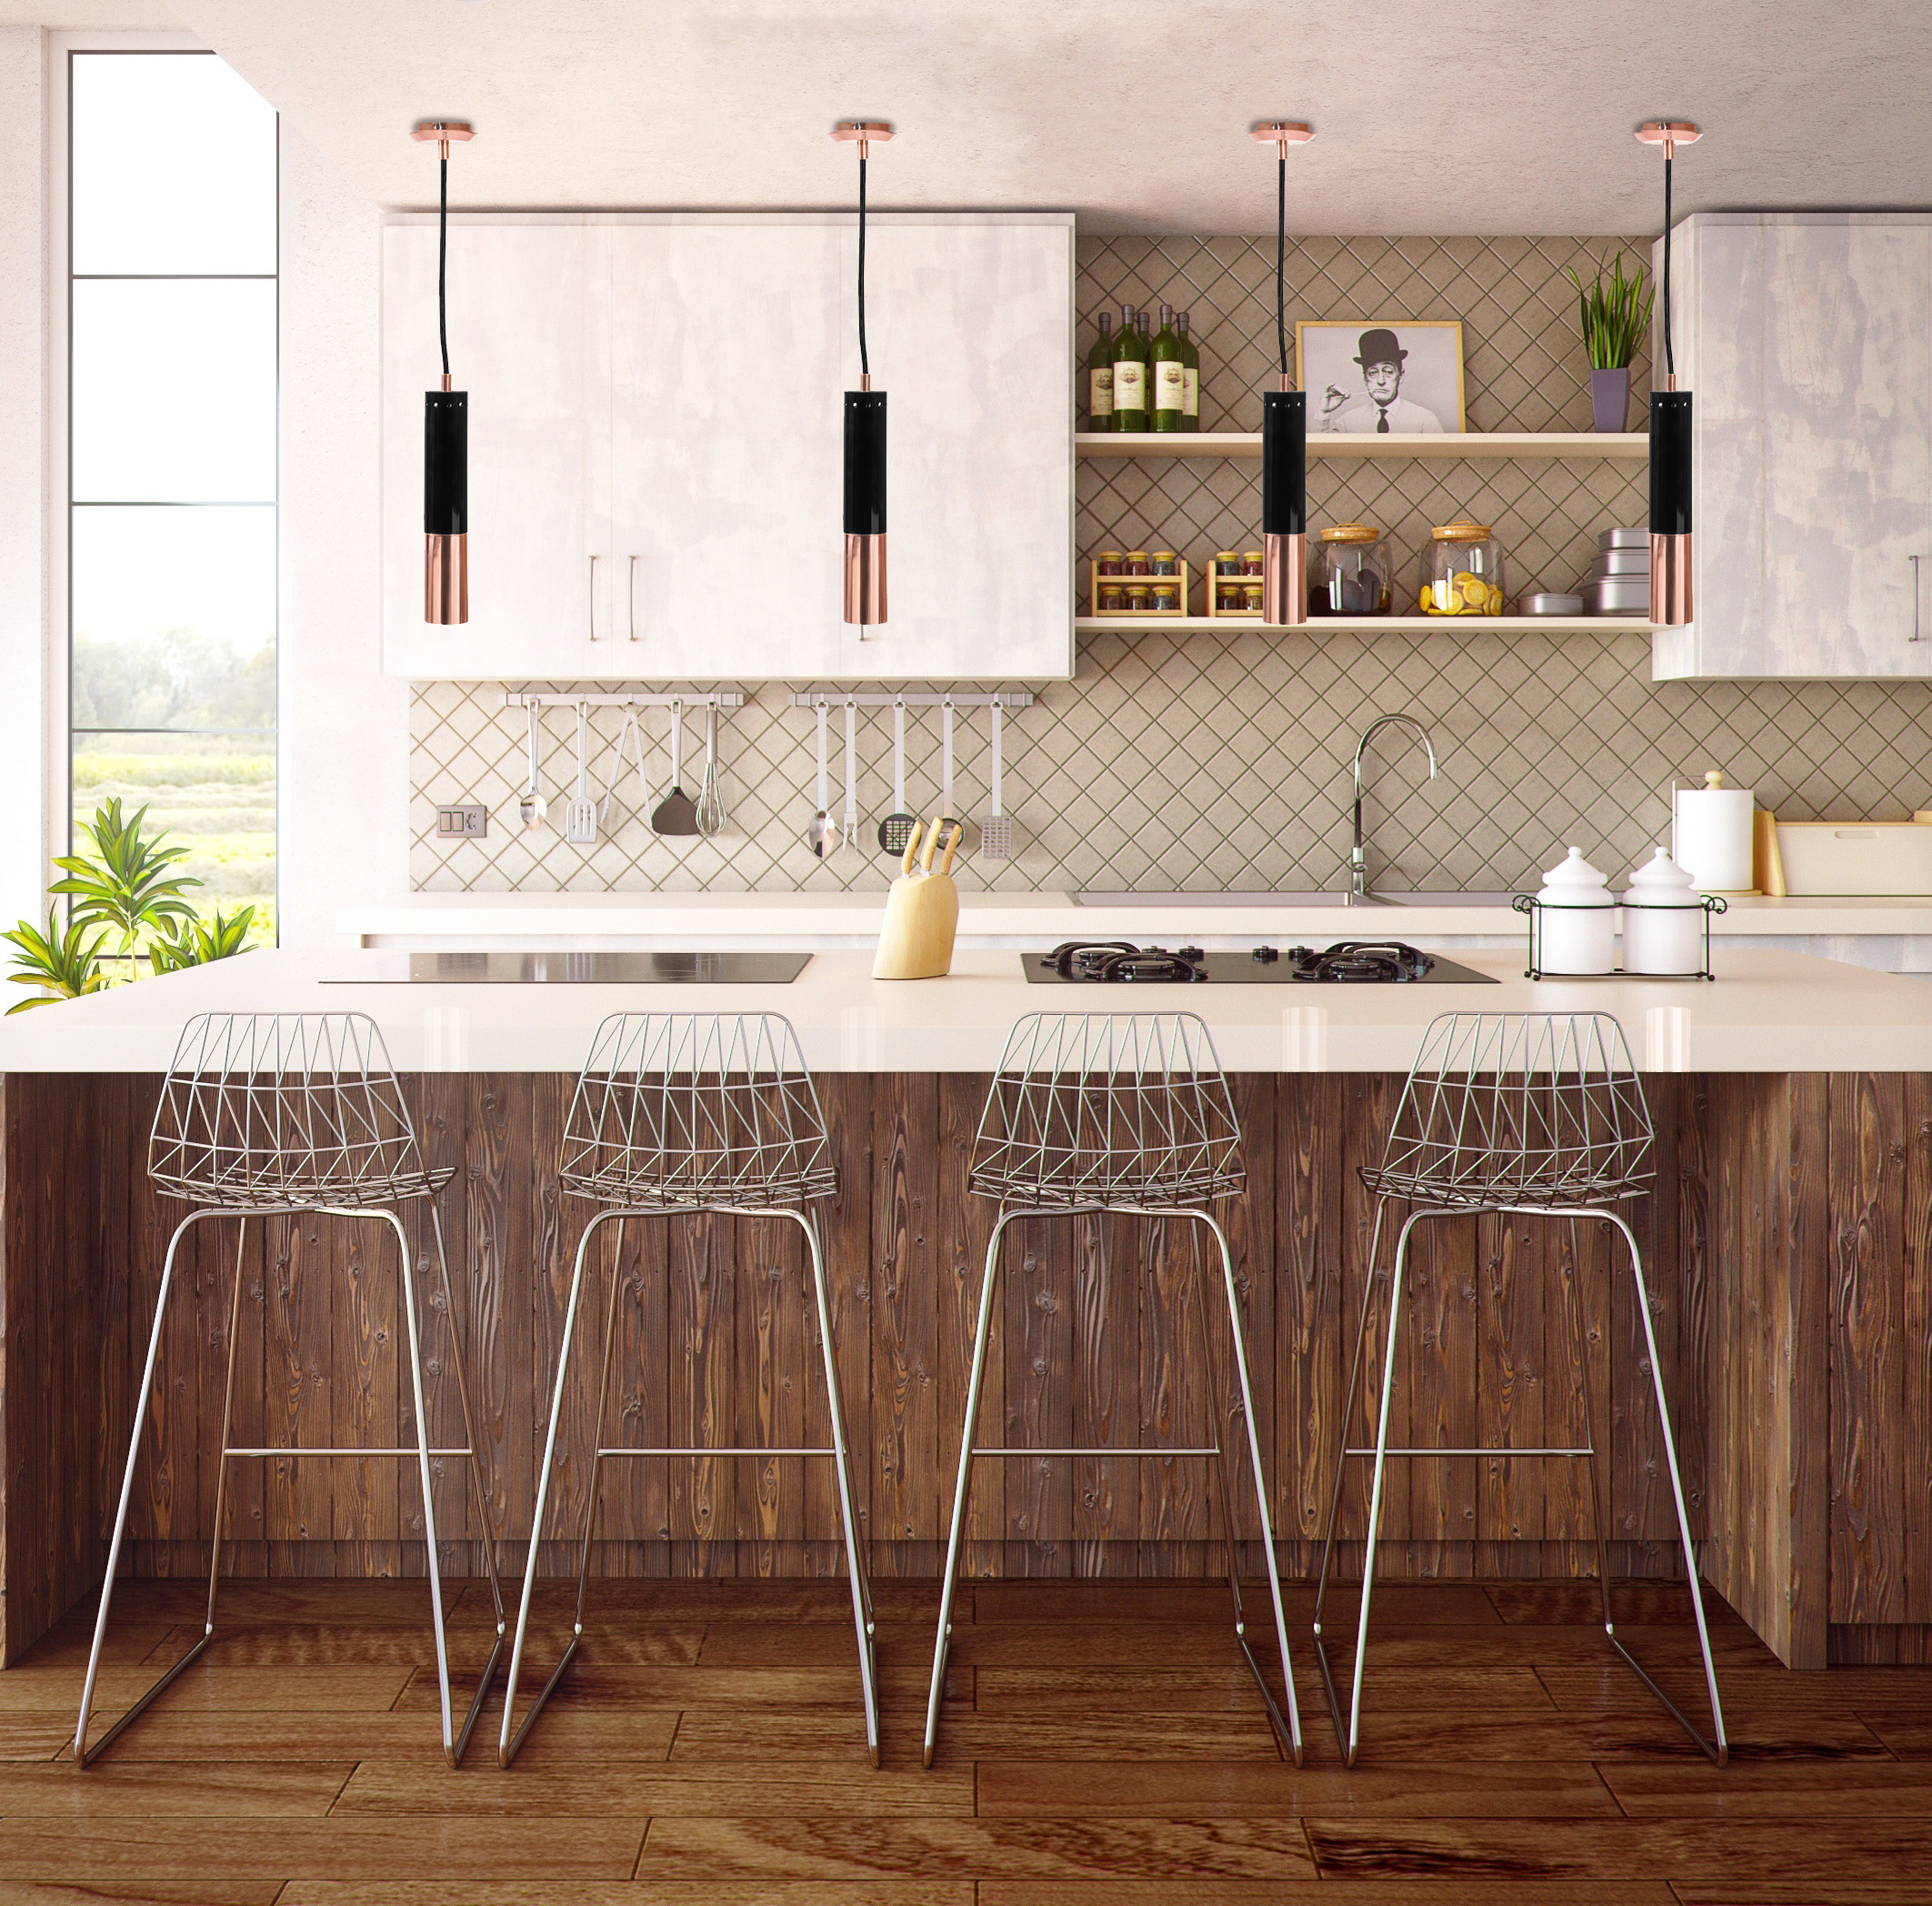 Discover Here the New Trends in America Home Design in 2021! america home design Discover Here the New Trends in America Home Design in 2021! 8 4